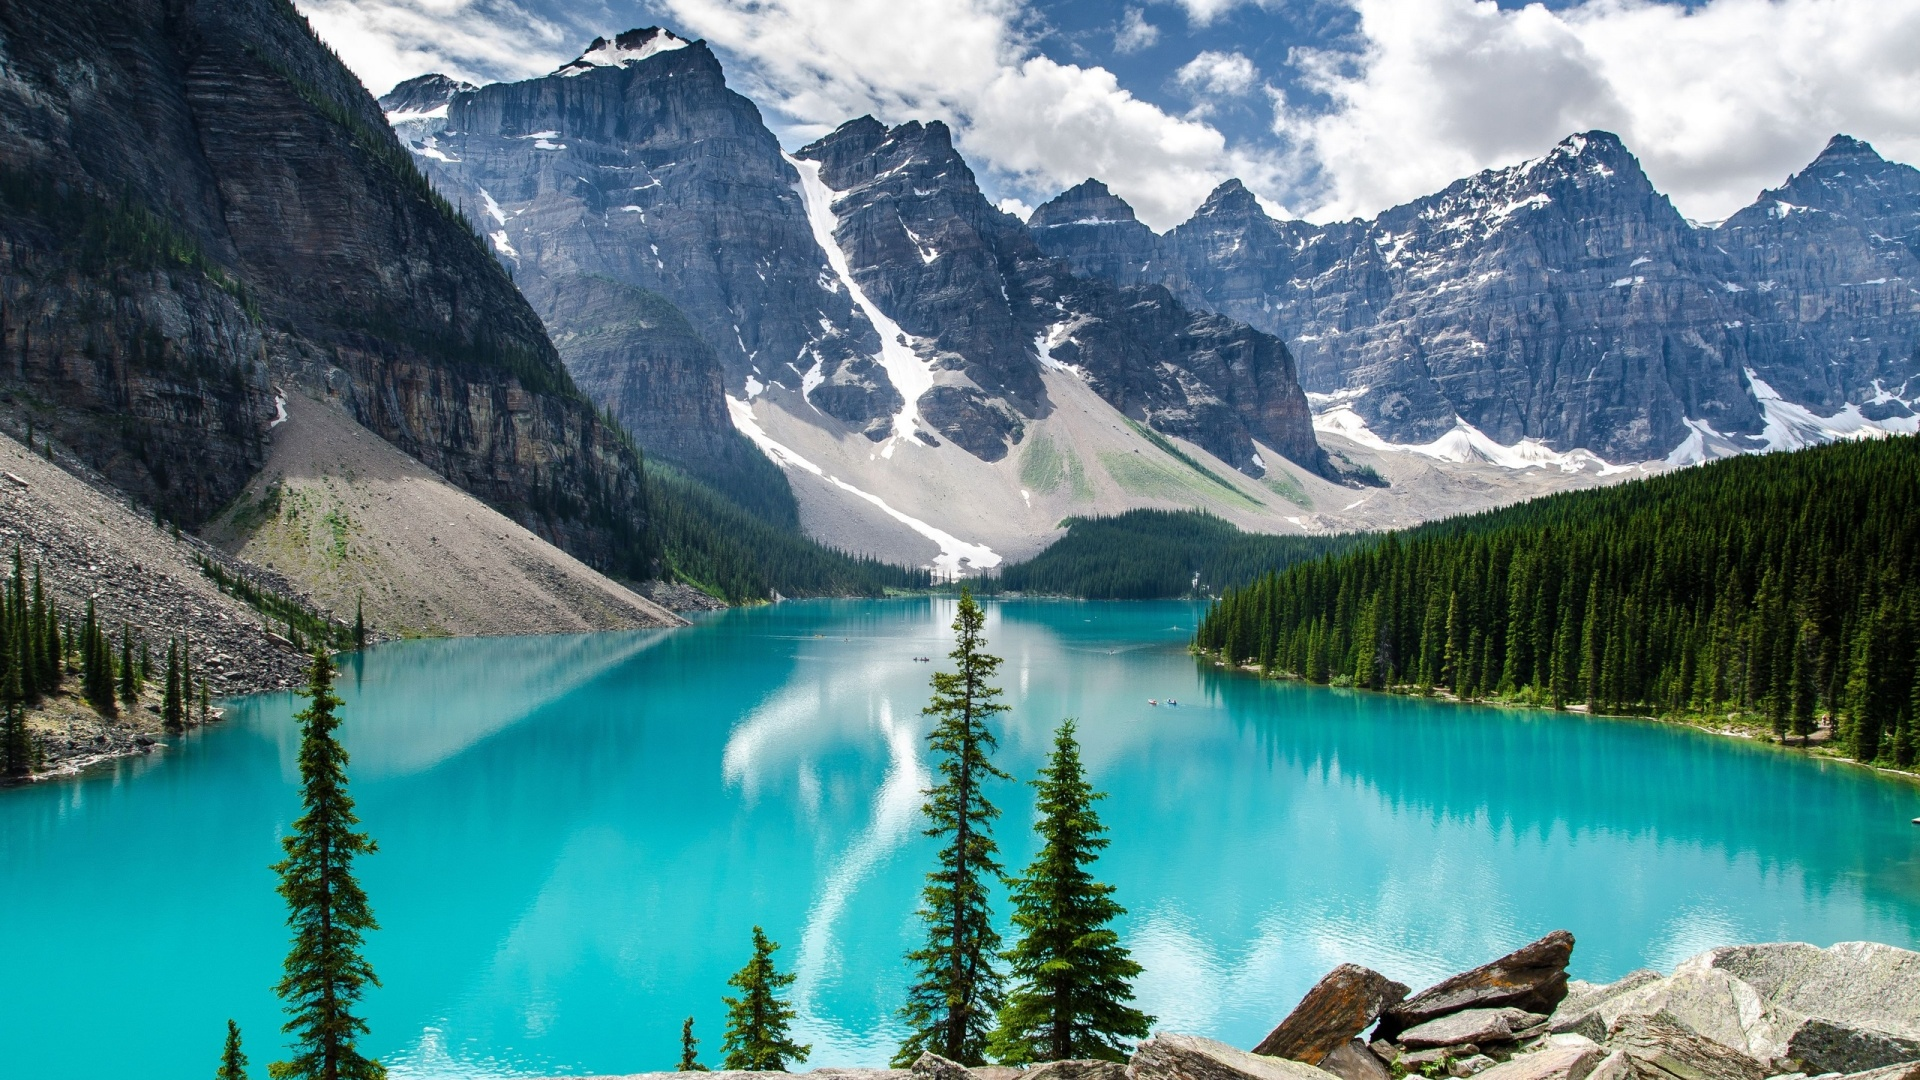 Banff National Park   High Definition Wallpapers   HD wallpapers 1920x1080